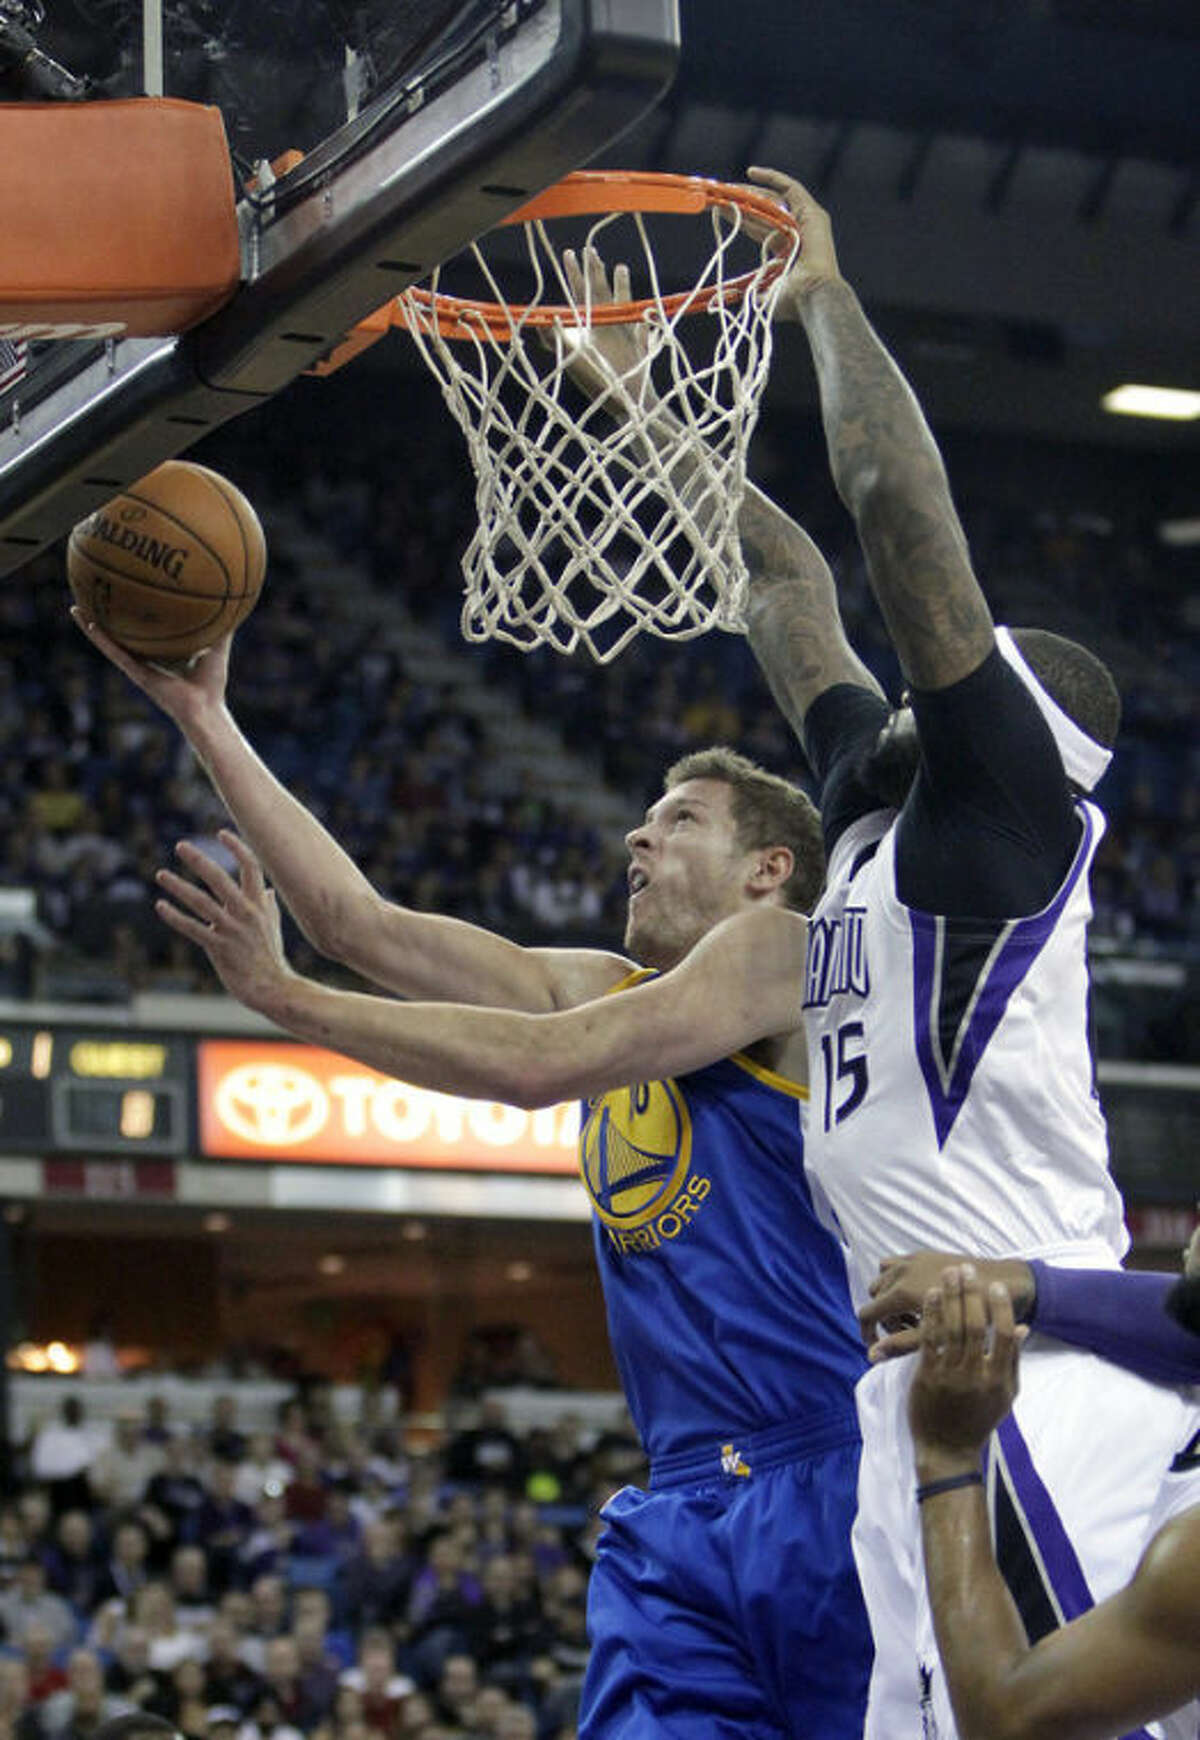 Golden State Warriors forward David Lee, left, goes to the basket against Sacramento Kings center DeMarcus Cousins during the first quarter of an NBA basketball game in Sacramento, Calif., Sunday, Dec. 1, 2013. (AP Photo/Rich Pedroncelli)